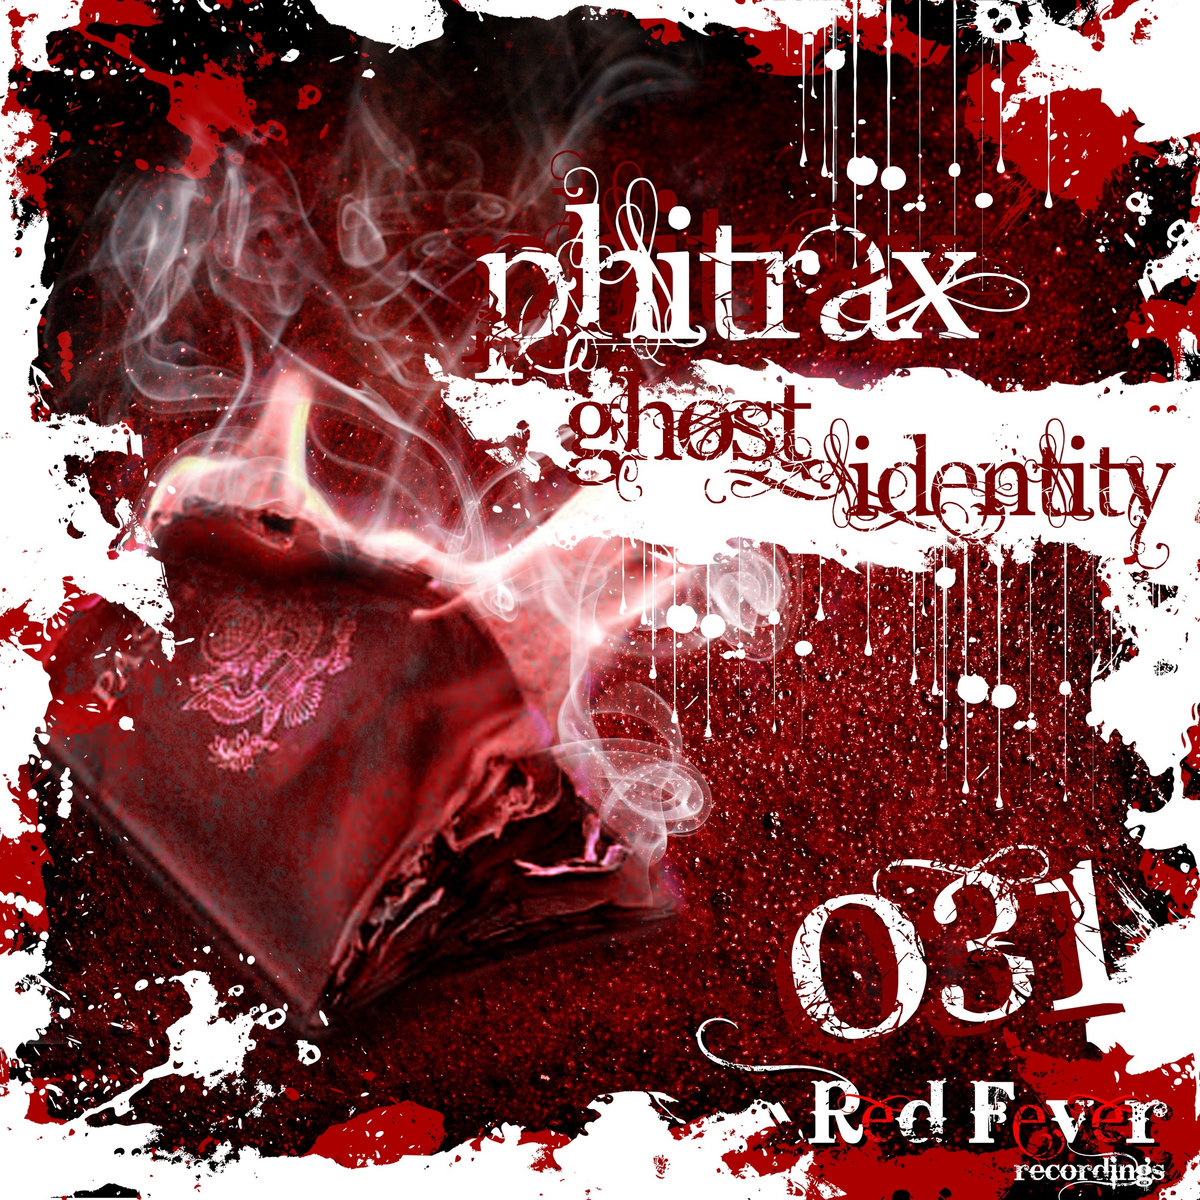 Phitrax - Doesn't Work @ 'Ghost Identity' album (electronic, gabber)